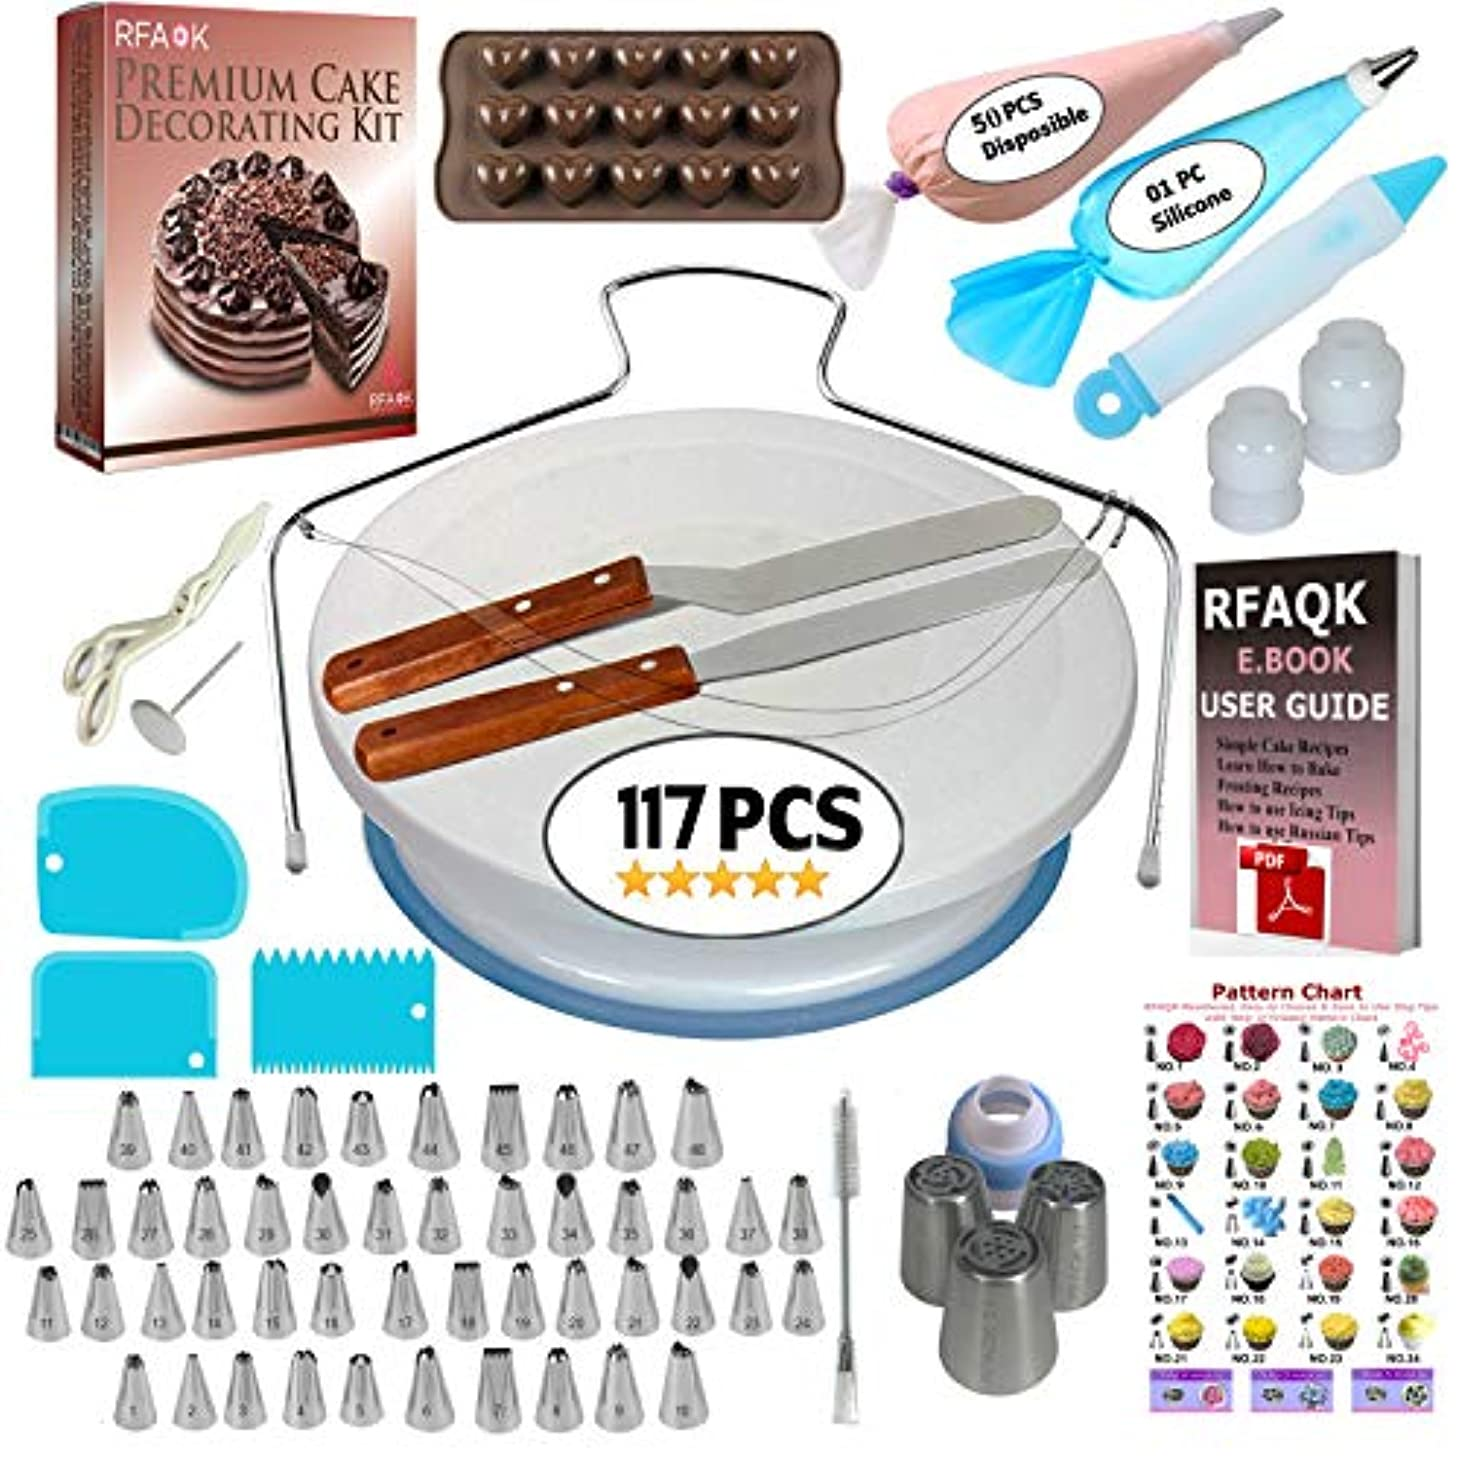 117 Pcs Cake Decorating Supplies Kit for Beginners-1 Turntable stand-48 Numbered icing tips with pattern chart & E.Book-1 Cake Leveler-Straight & Angled Spatula-3 Russian Piping nozzles-Baking tools